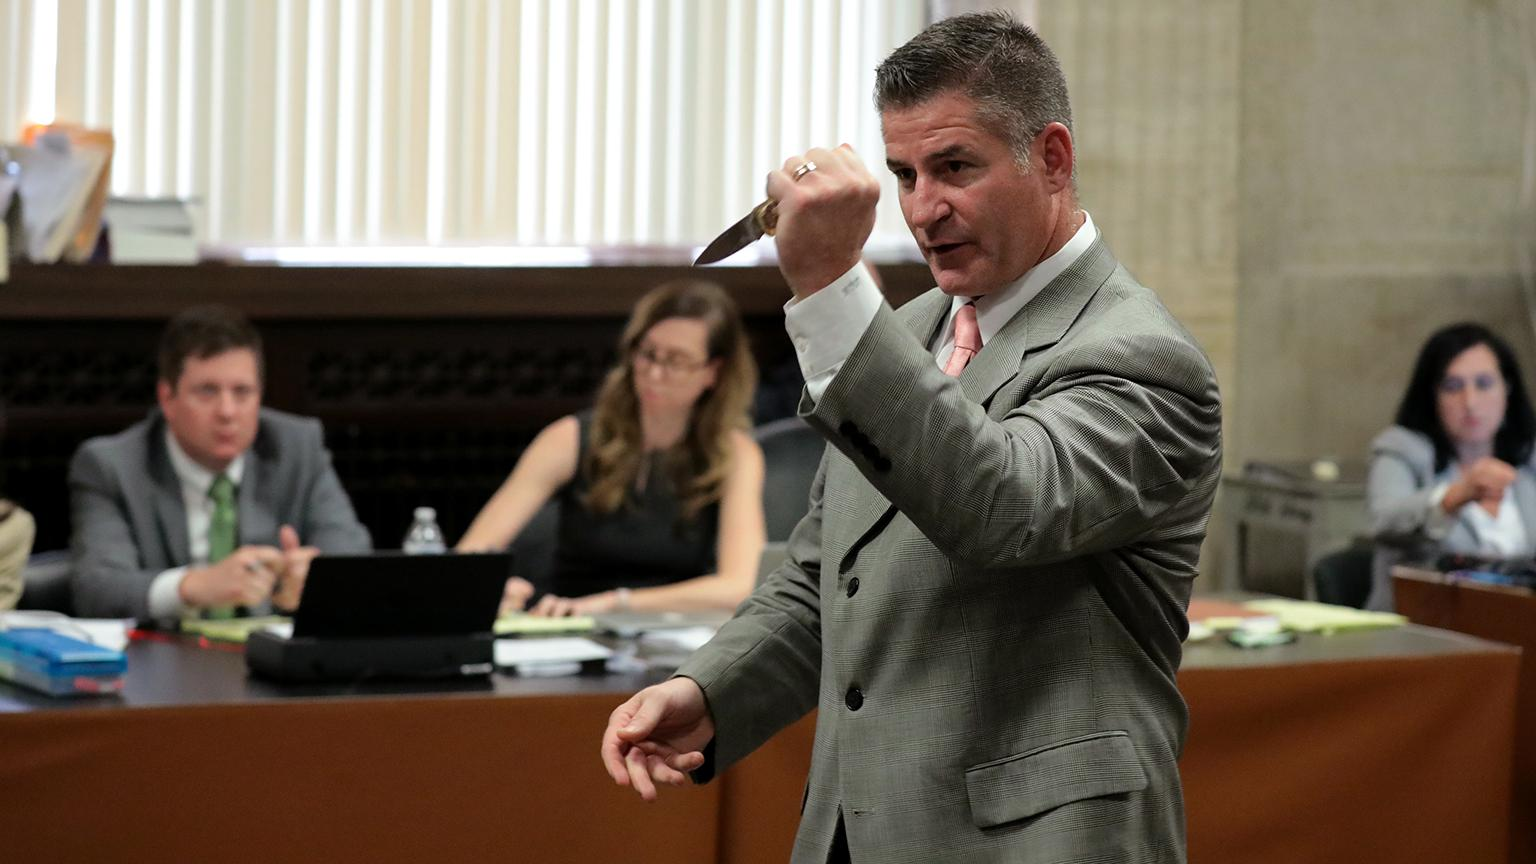 Jason Van Dyke's lead defense attorney Daniel Herbert gestures with Laquan McDonald's knife during the fourth day of the trial on Thursday, Sept. 20, 2018. (Antonio Perez / Chicago Tribune / Pool)